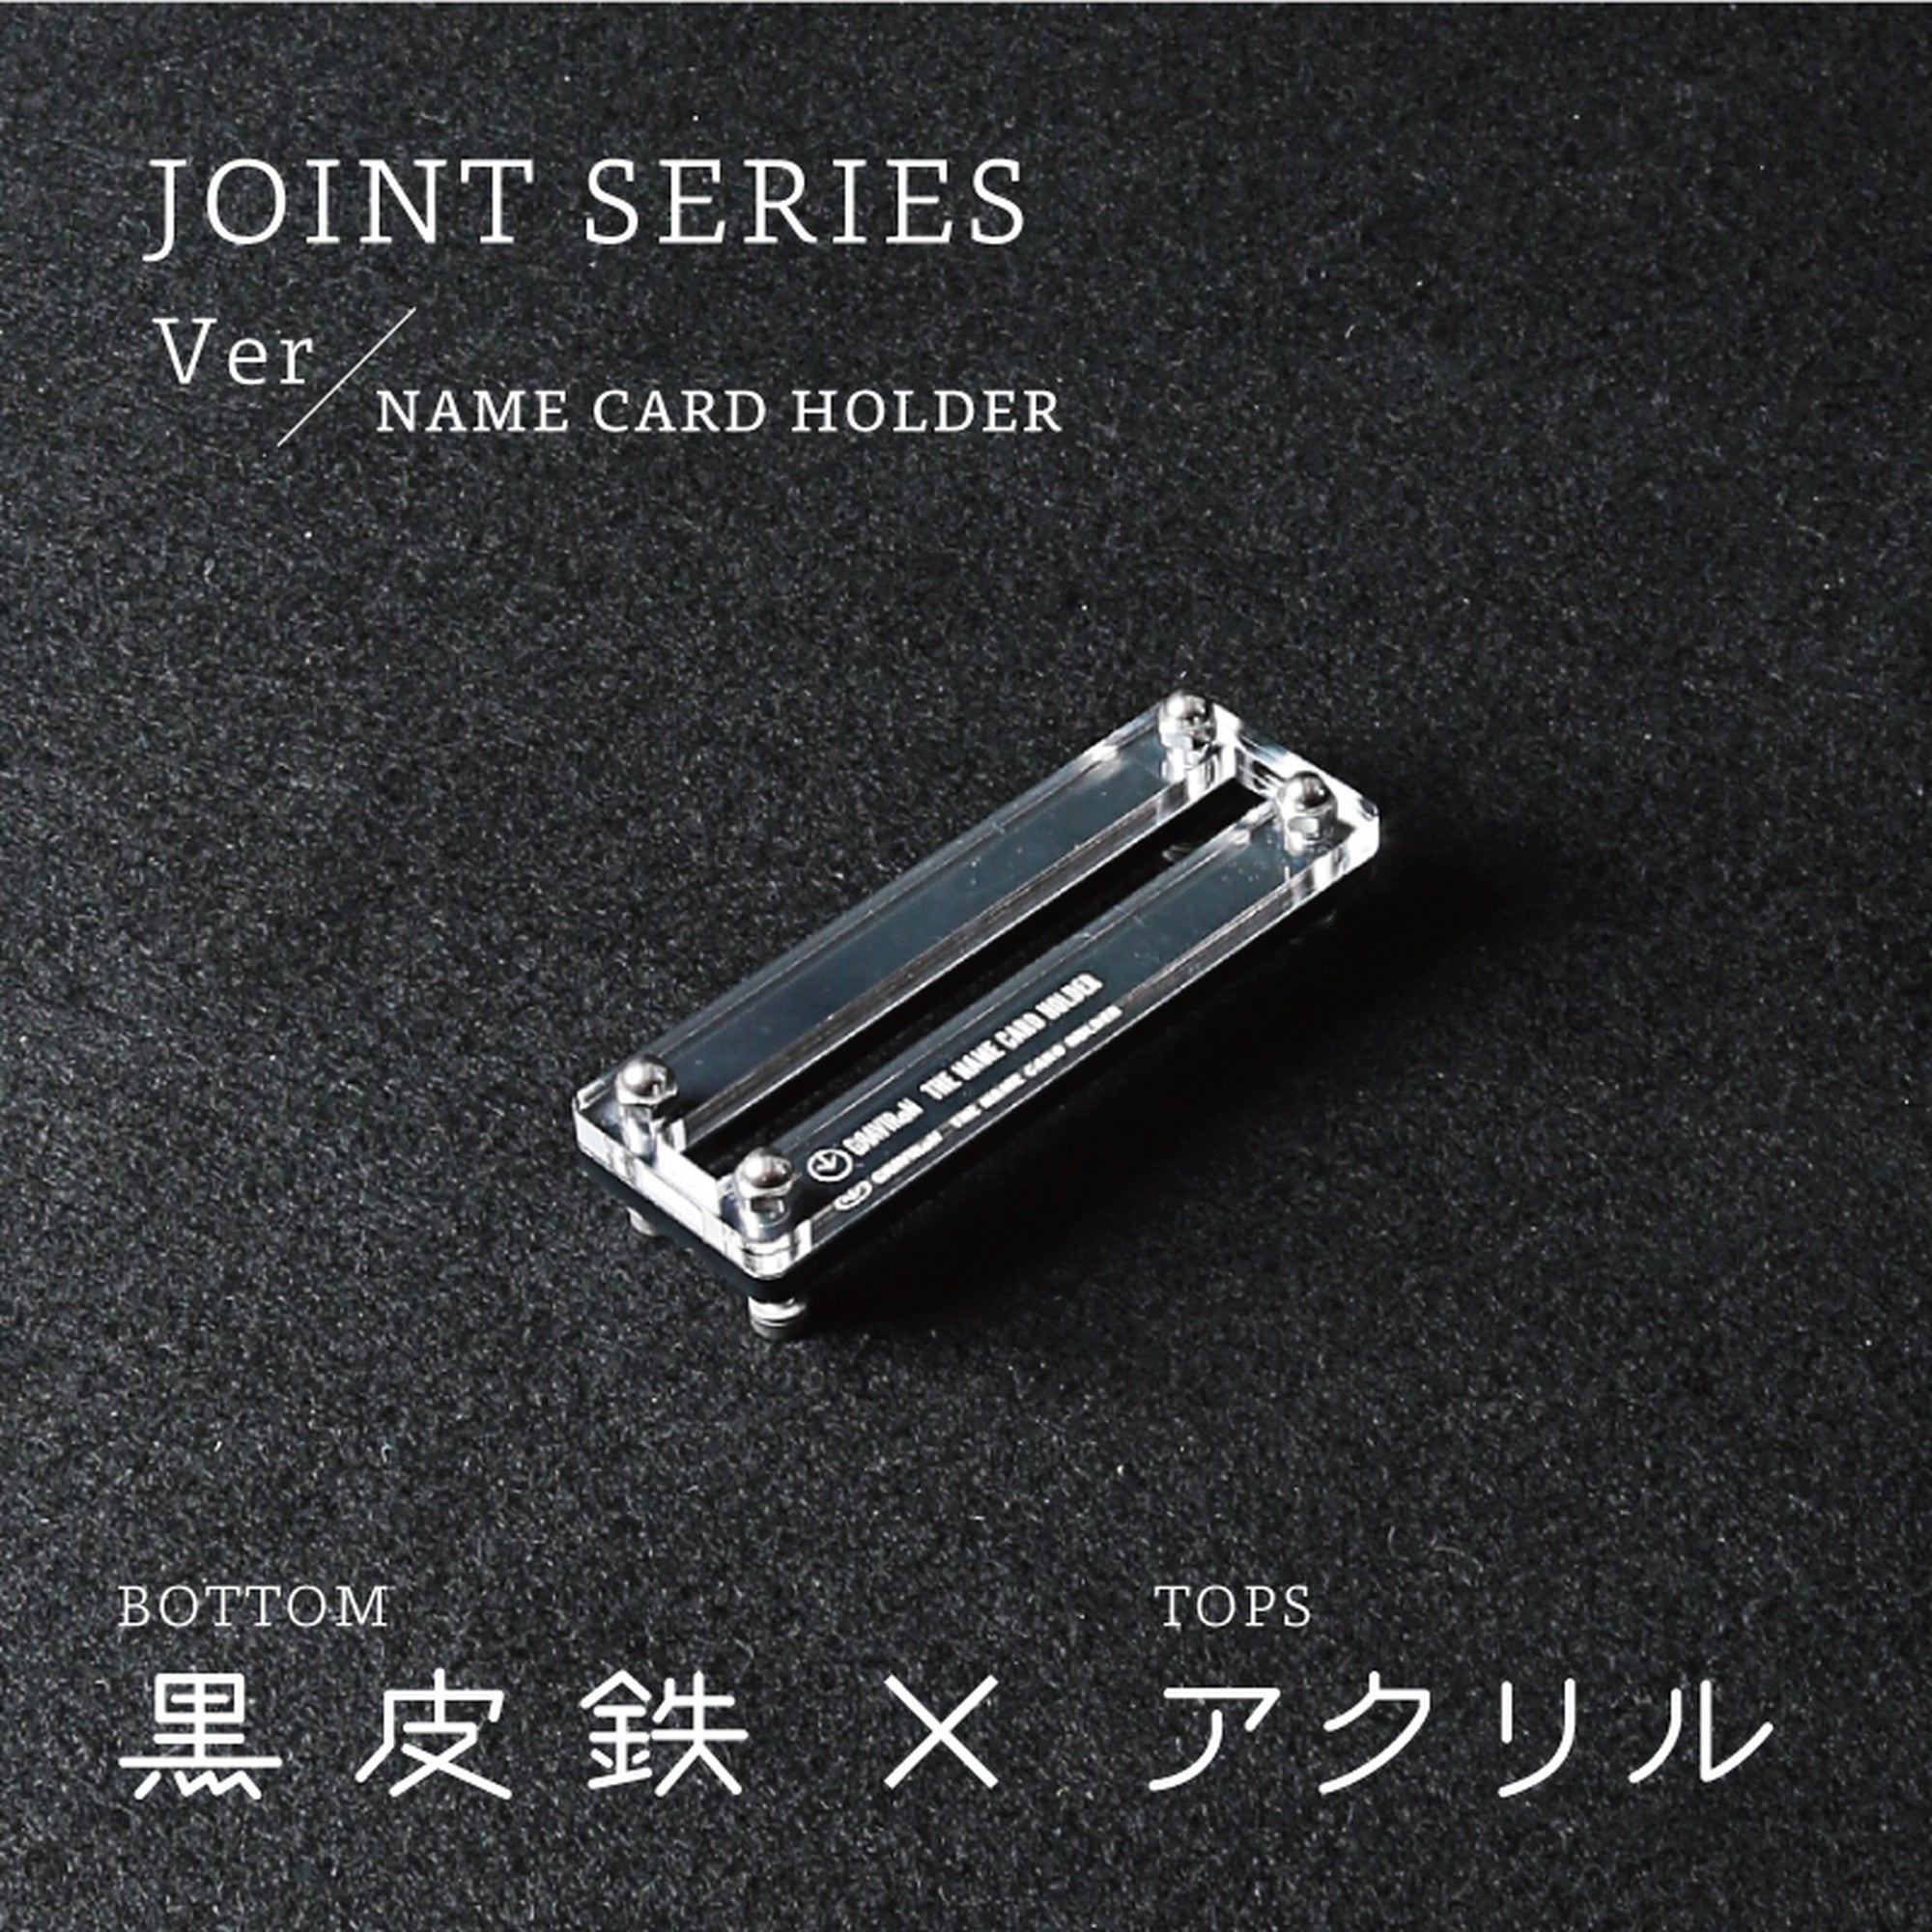 Joint Series Namecard Holder BOTTOM:黒皮鉄、TOP:アクリル